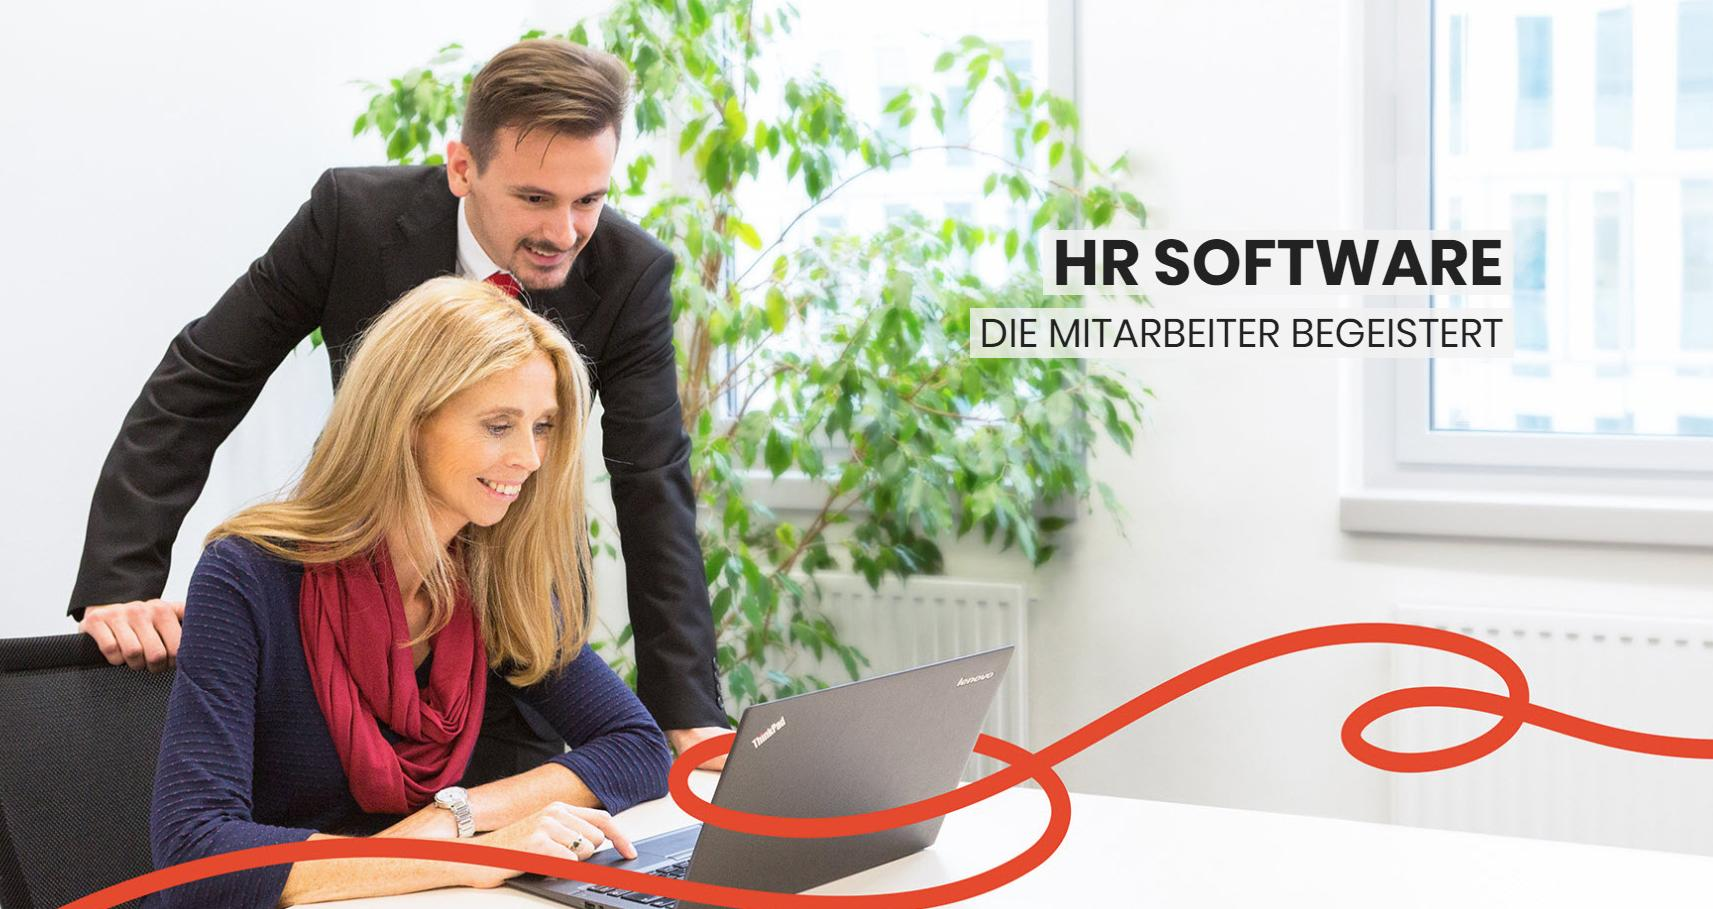 Workflow EDV GmbH Teamfoto – Workflow Simplify your HR